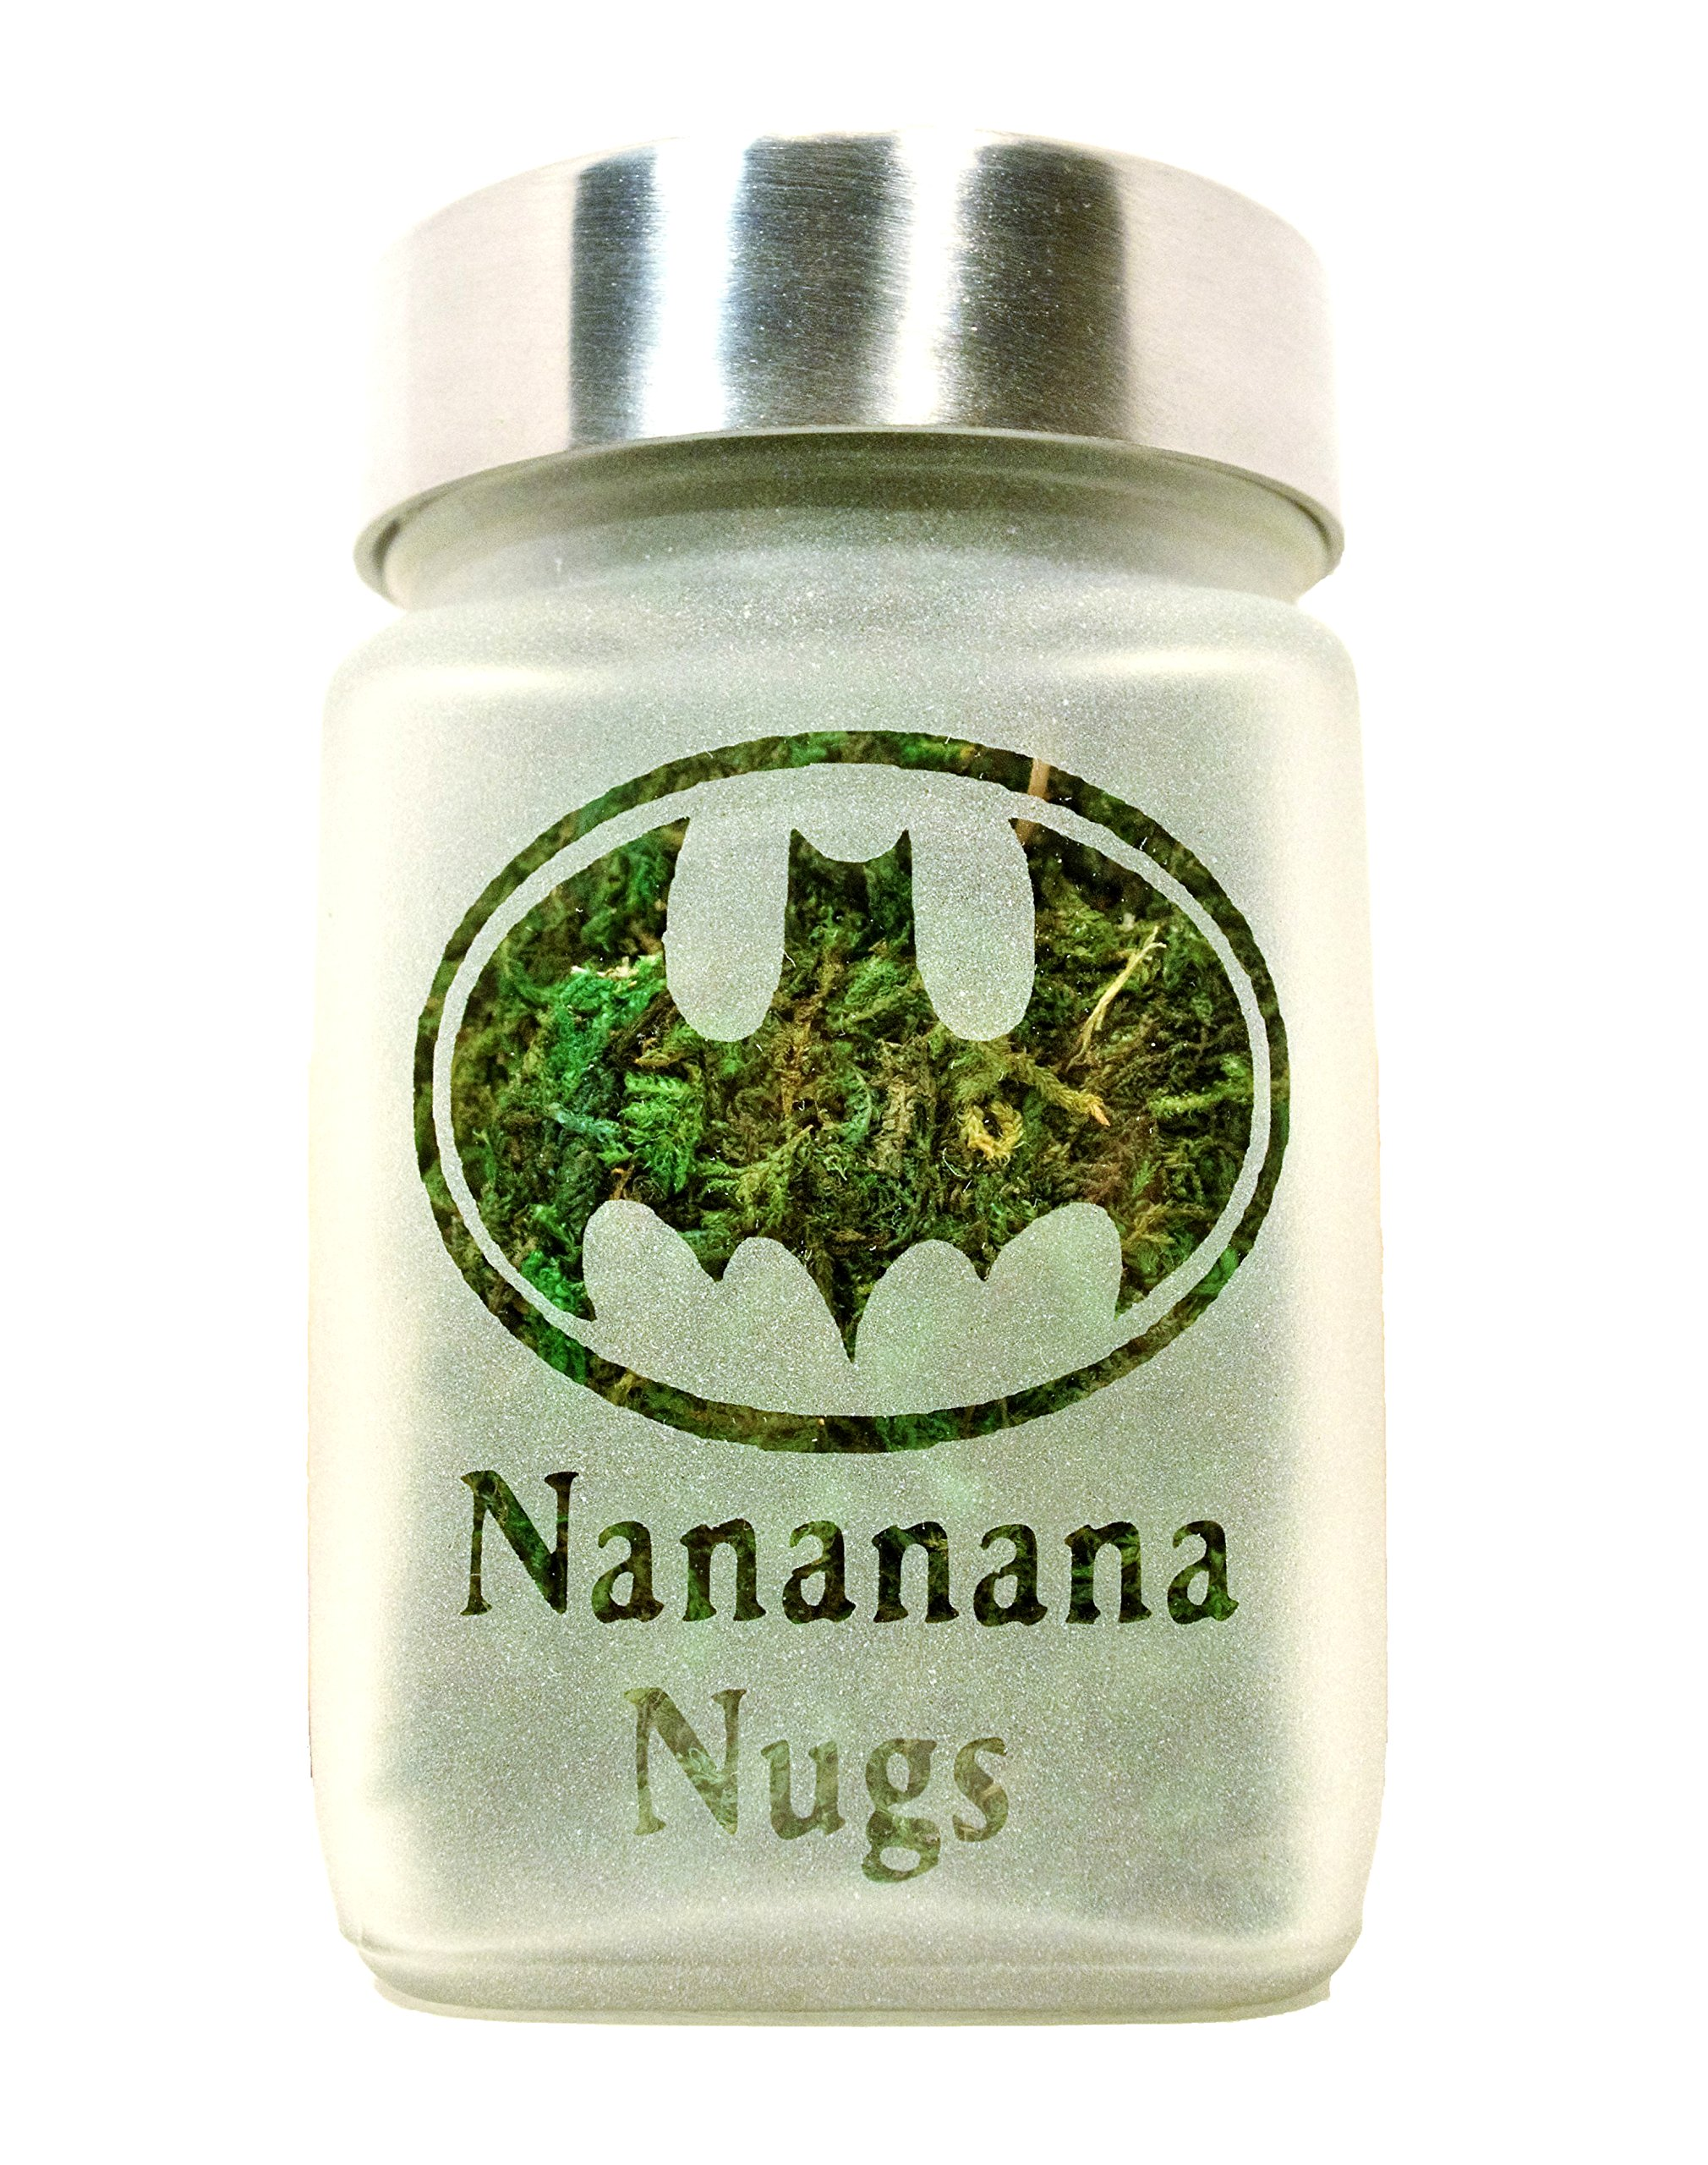 Retro Batman Stash Jar | Nananana Nugs Weed Jar and Weed Accessories | Stoner Gifts, Stash Jars & Stoner Accessories by Twisted420Glass (Image #1)